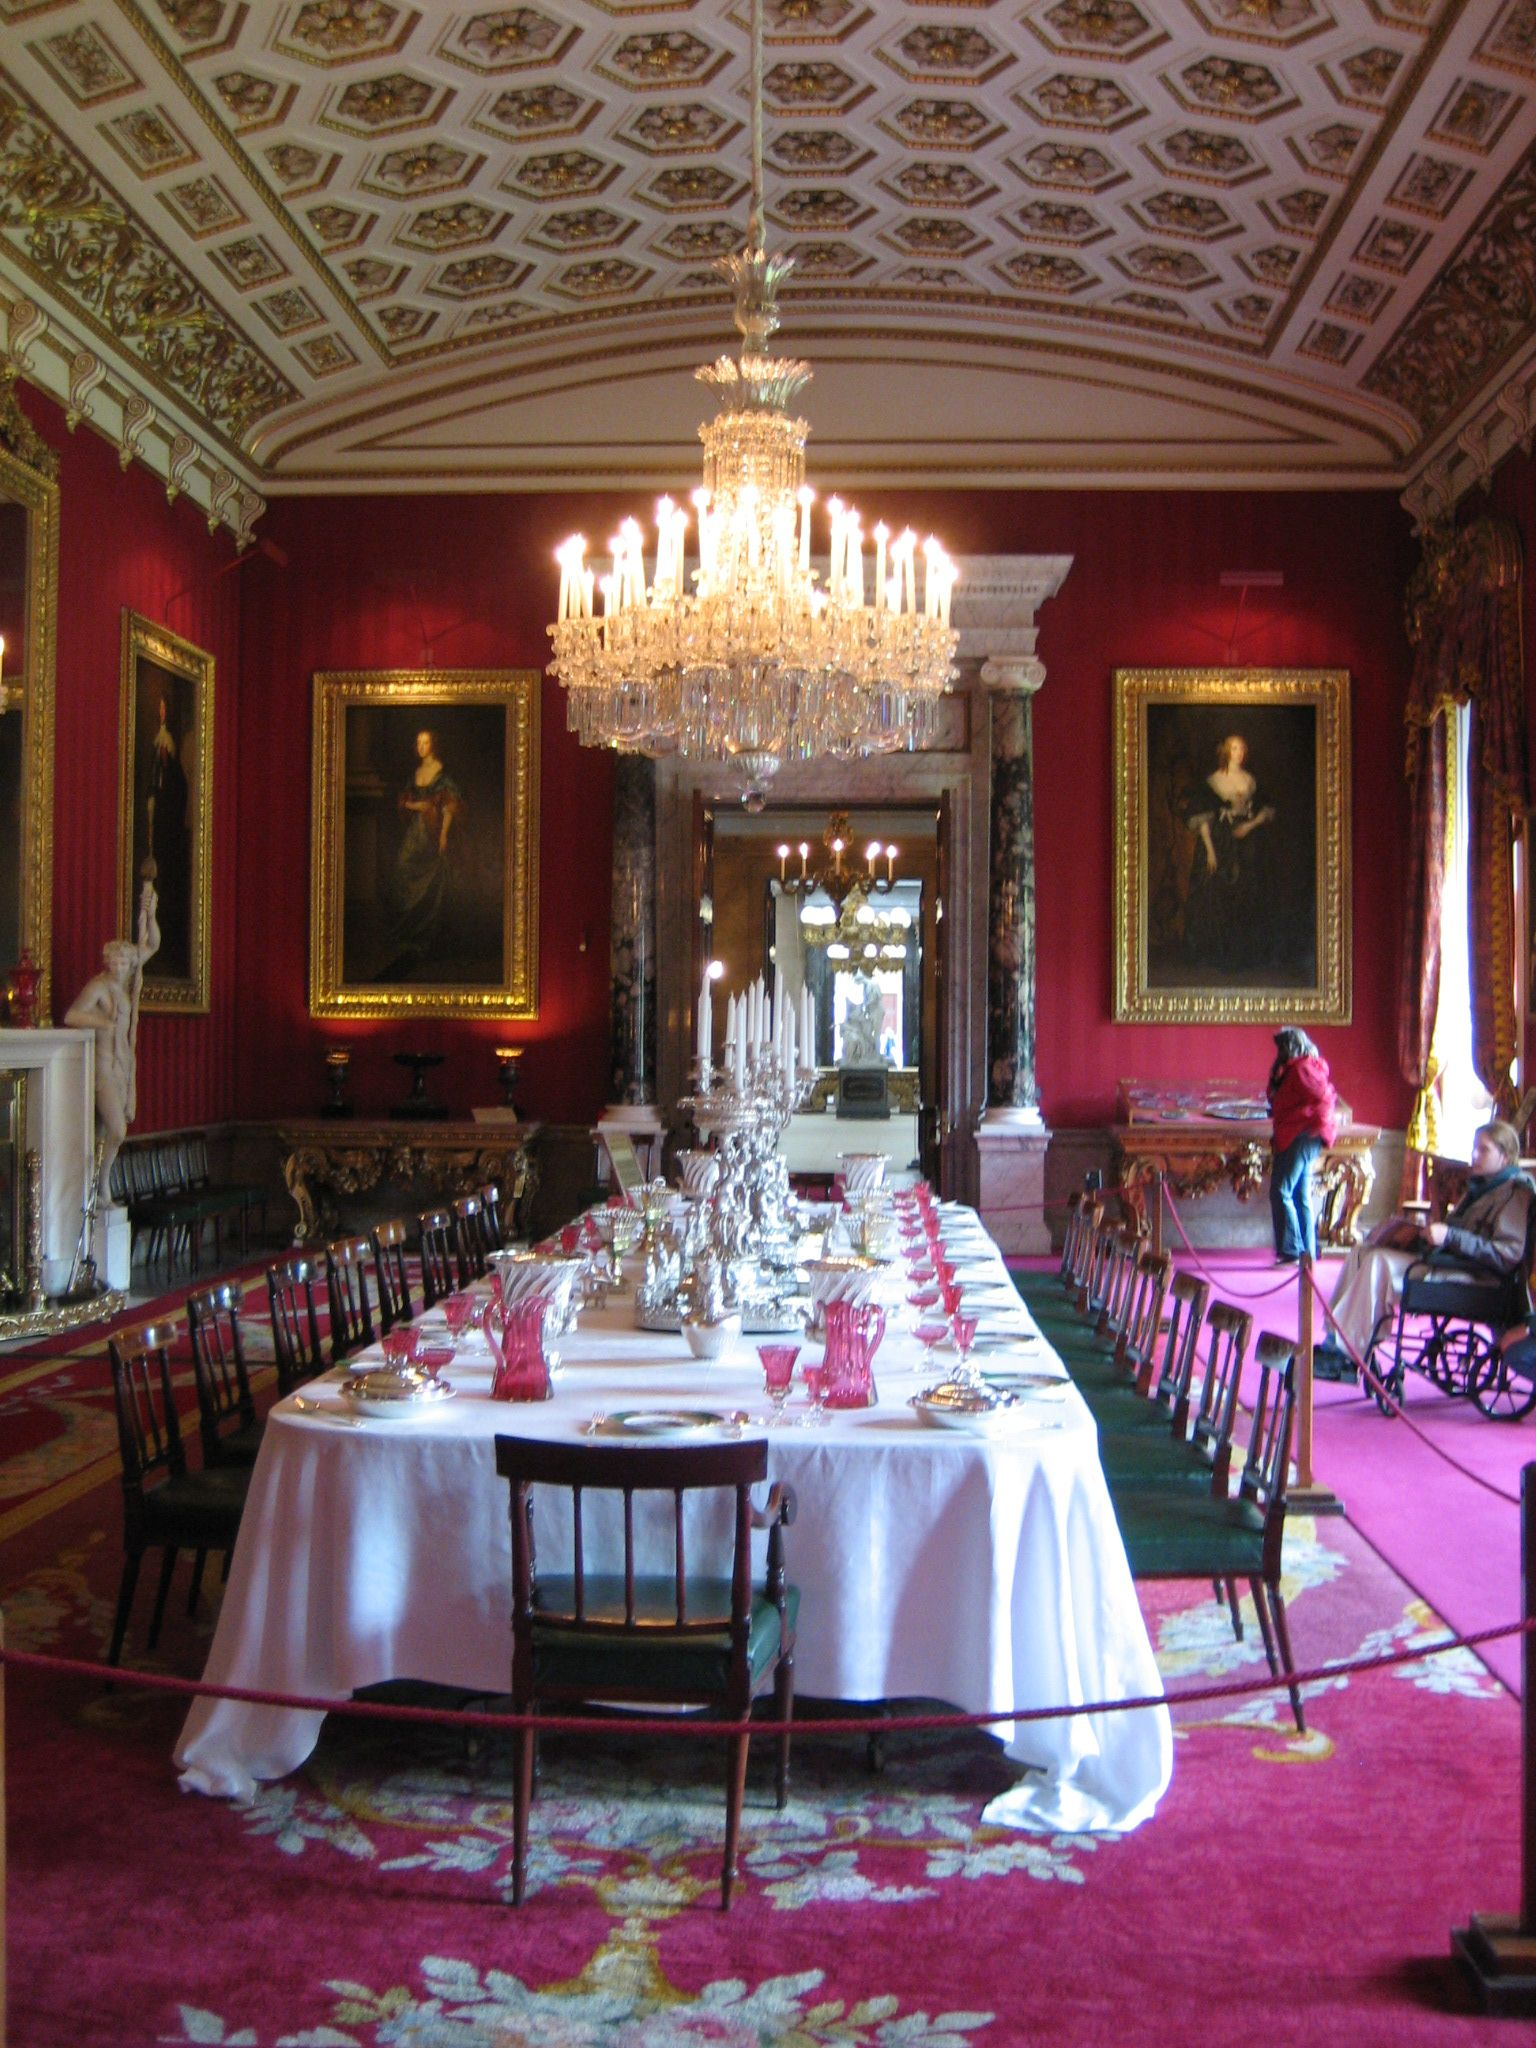 Chatsworth House Room: Grand Dining Room From The Chatsworth House